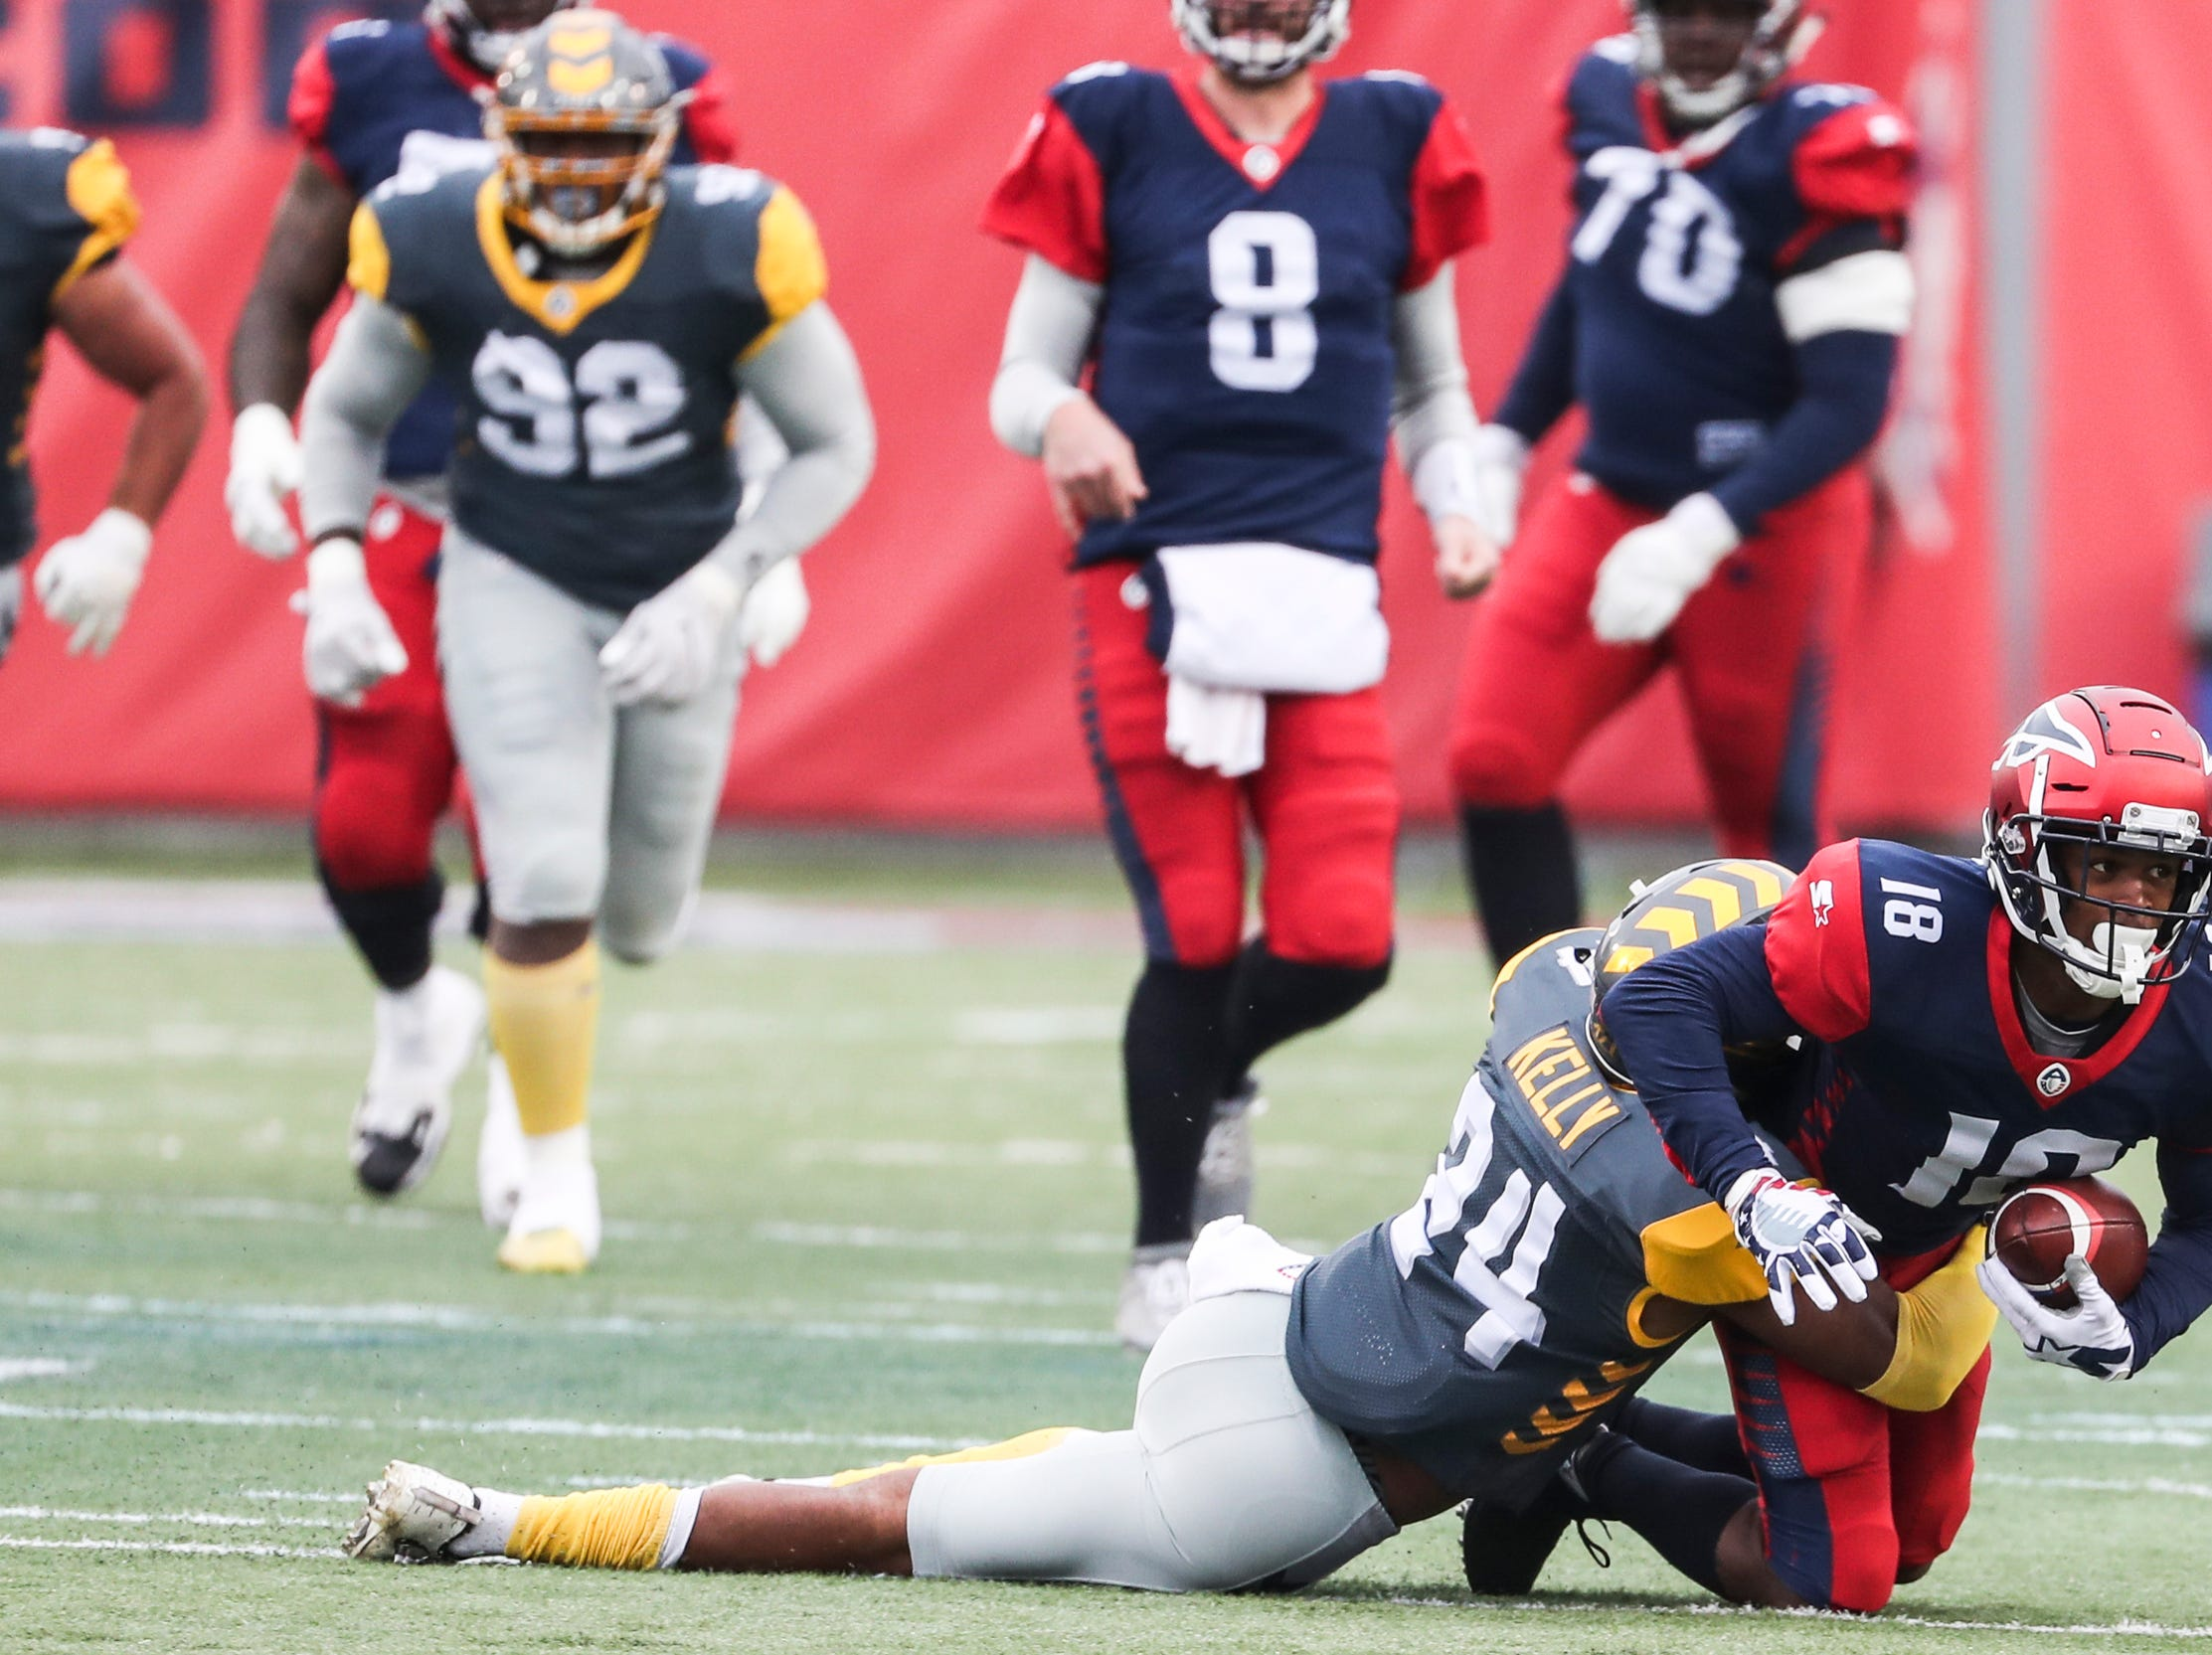 March 02, 2019 - Dontez Byrd is brought down during Saturday's game against the San Diego Fleet.